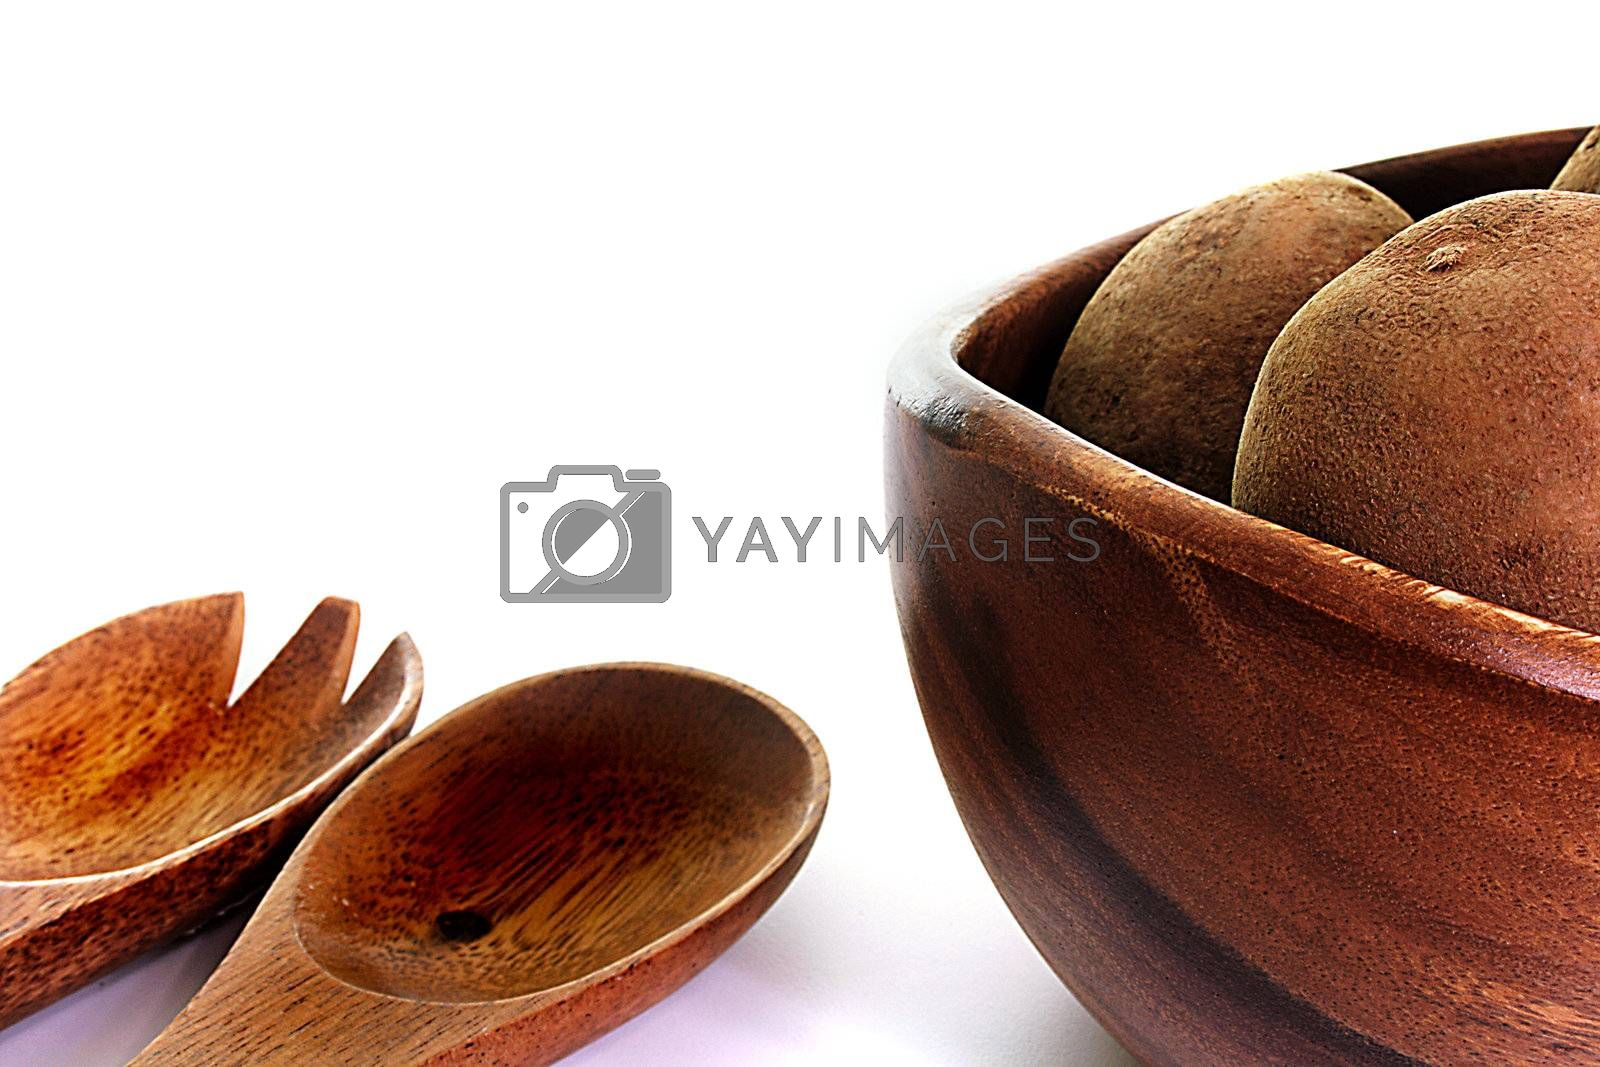 Photos «Potato» are useful for designers and publishers that are doing works on the topic of printed and multimedia presentations, websites, postcards, calendars, professional advertising etc.